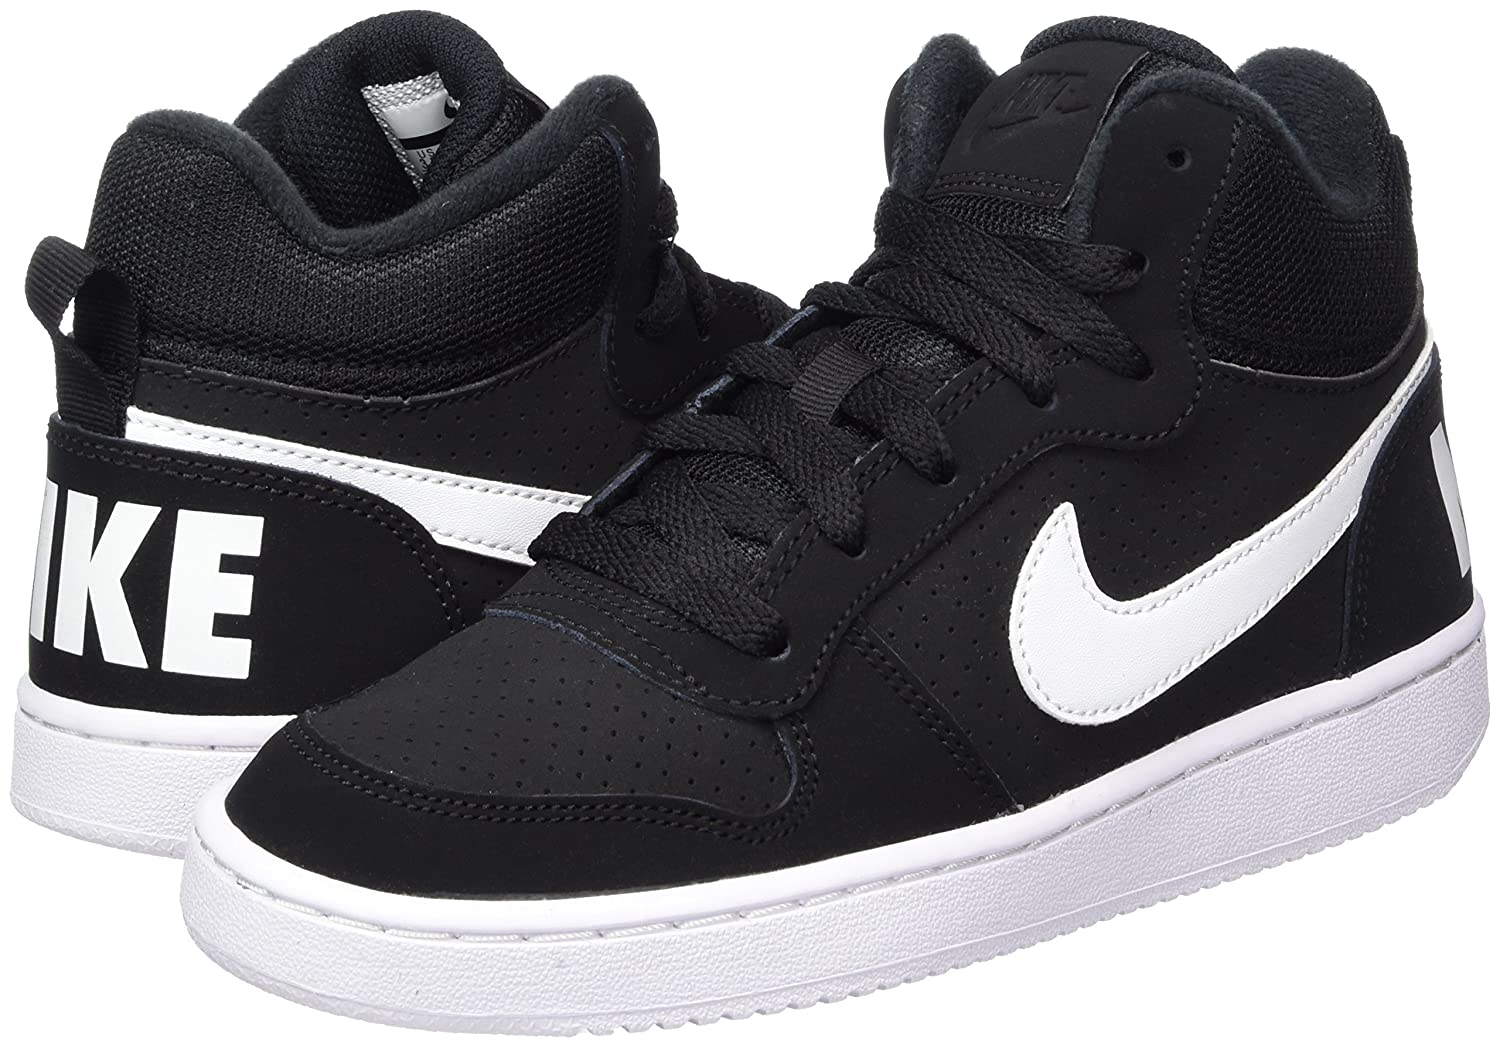 premium selection ef81c a2a70 NIKE Unisex Kids  Court Borough Mid (Gs) Basketball Shoes 839977-004 ...